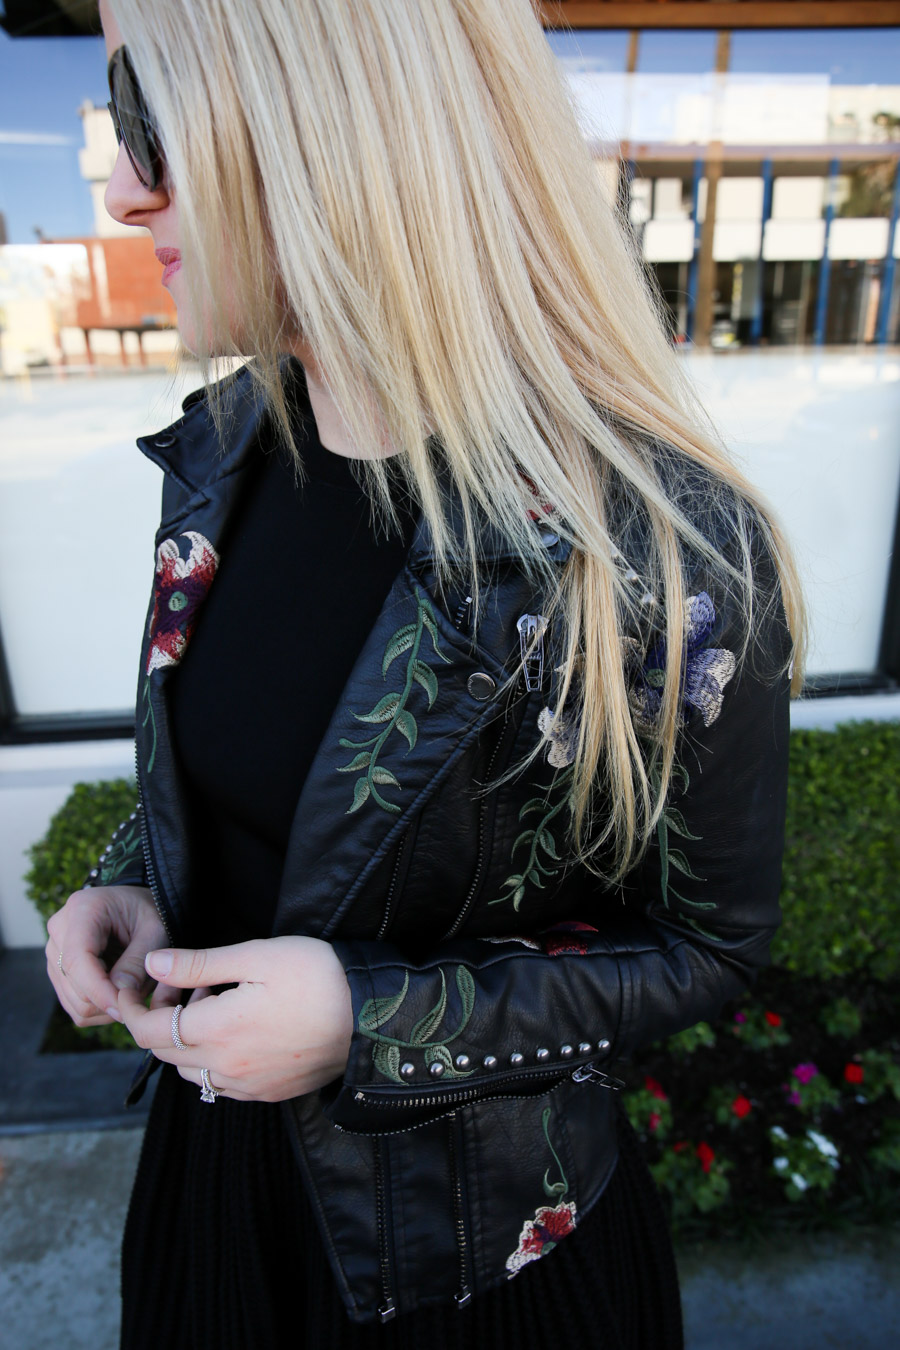 Embroidered Leather Jacket with Dress Outfit for women. Spring and Fall Outfit ideas for women. How to wear a little black dress with a fun leather jacket.